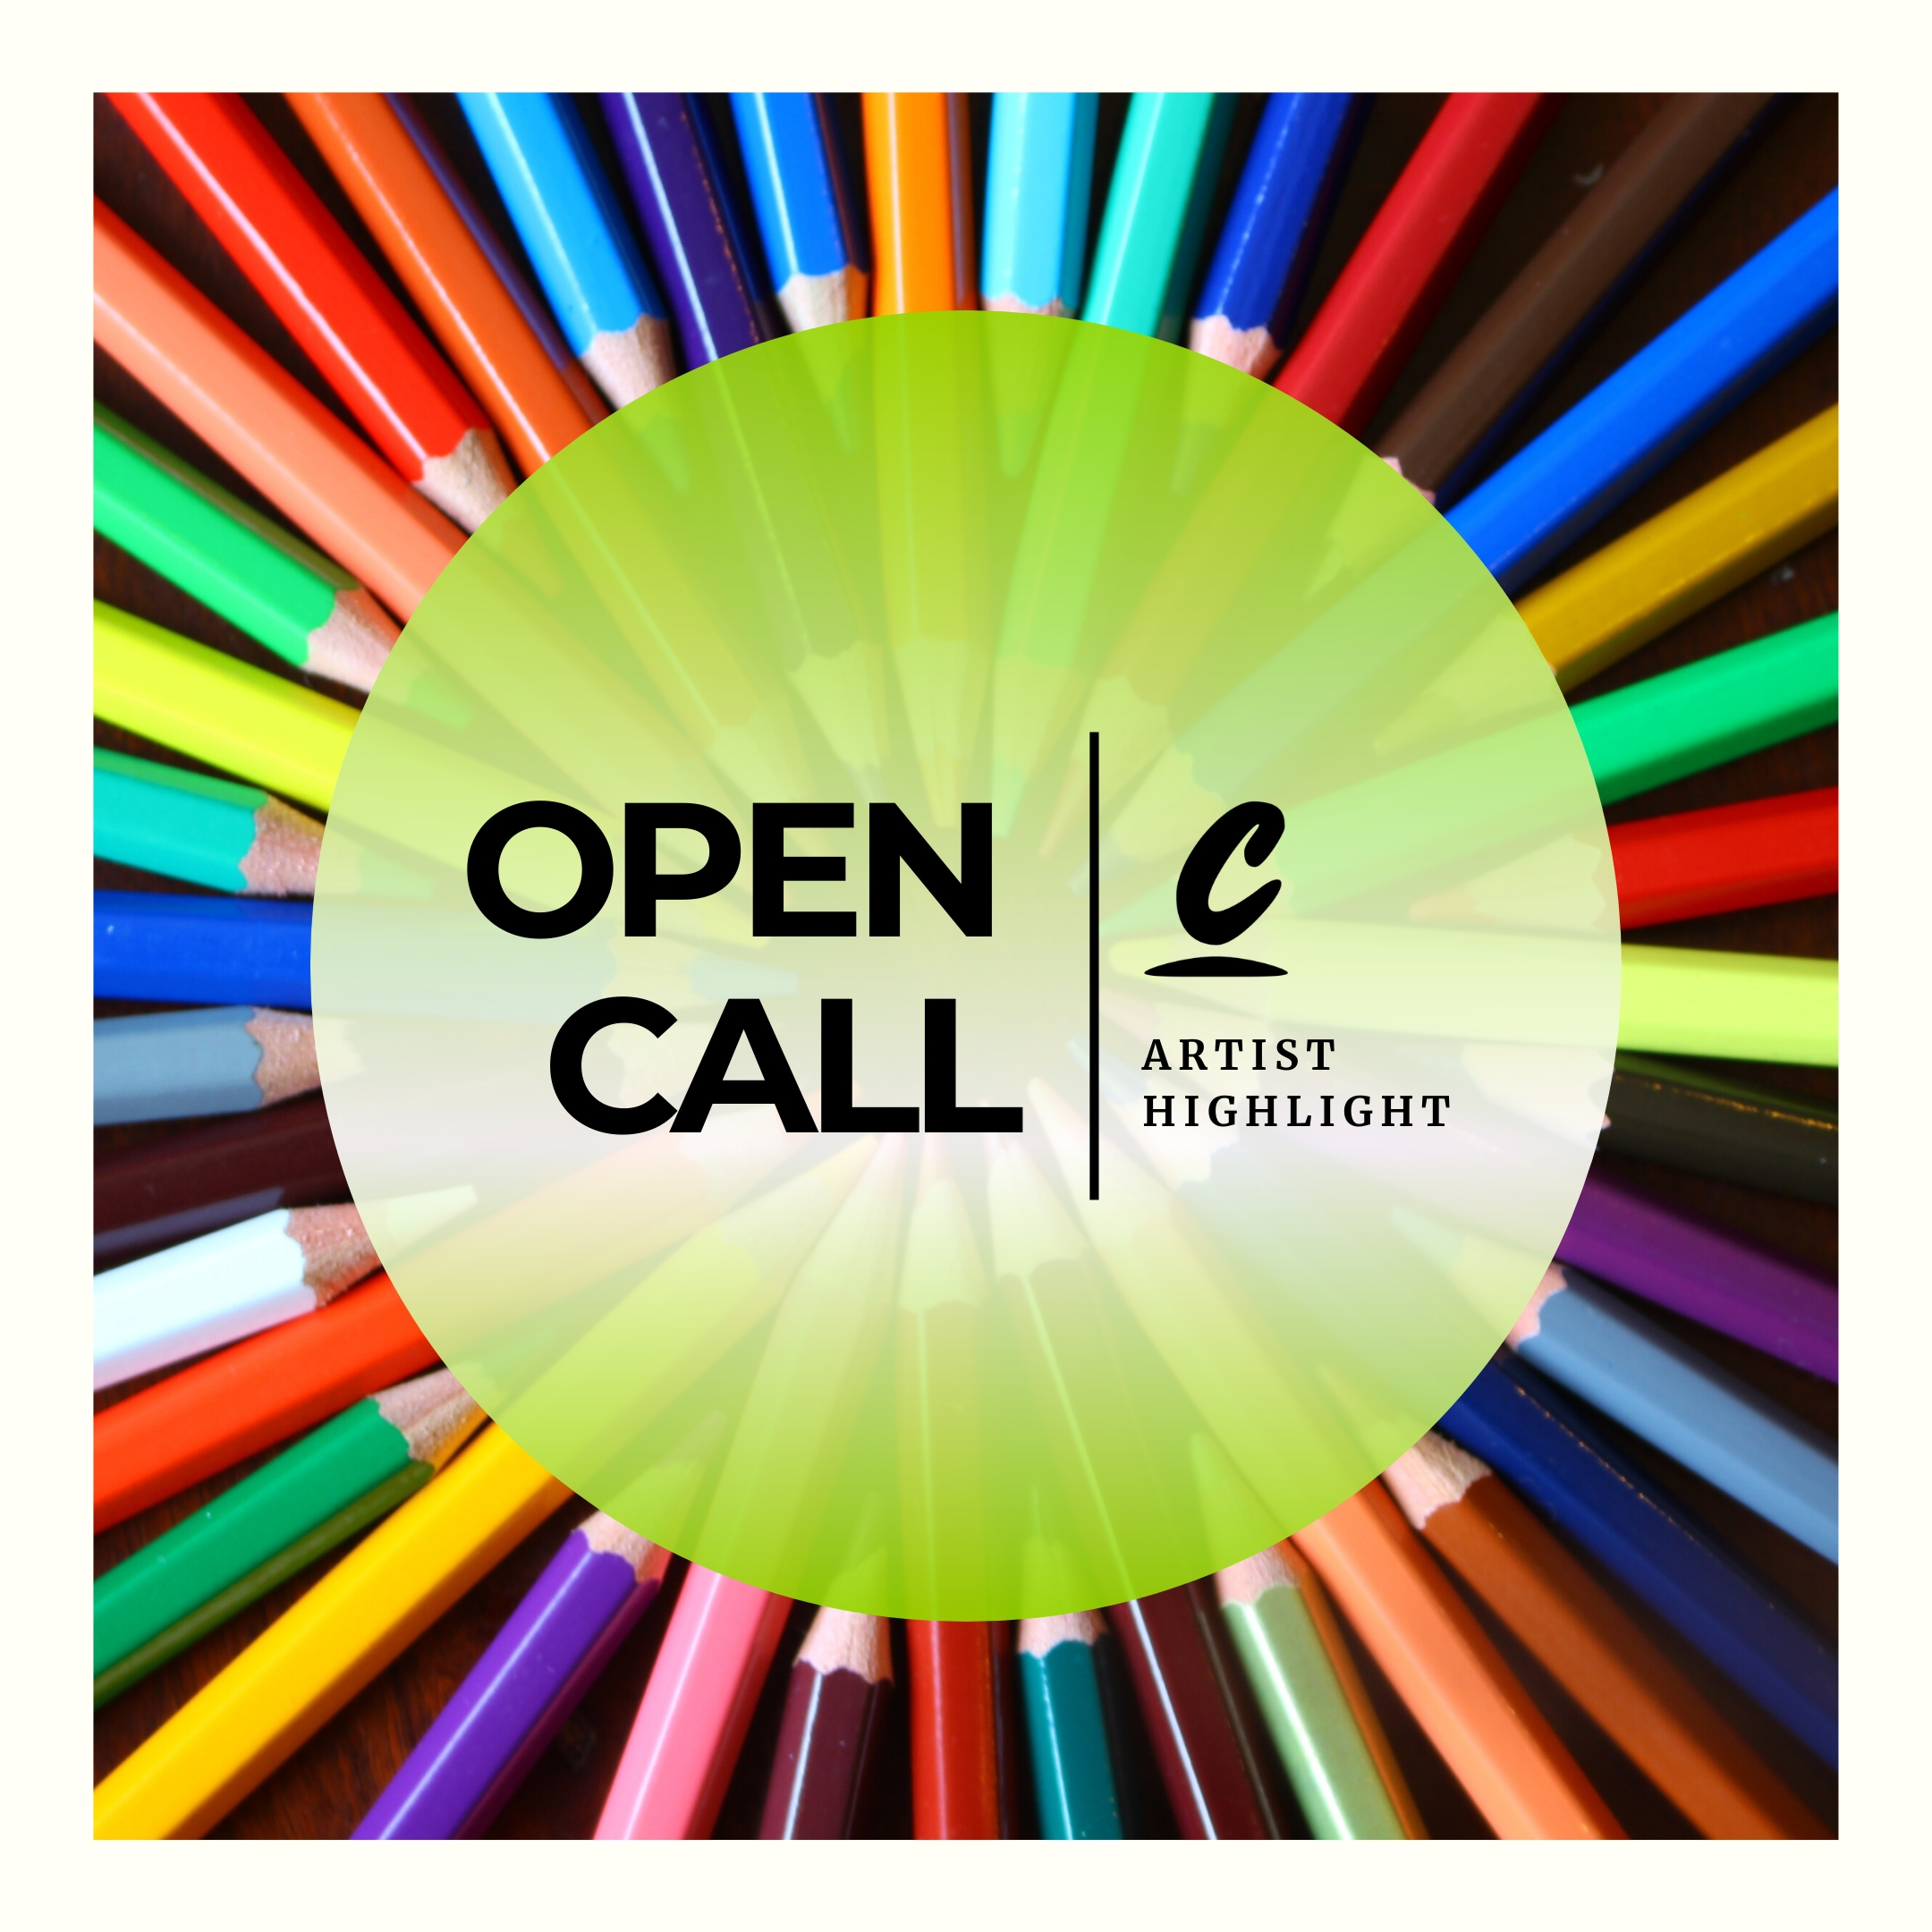 Open Call for Artists in London, Ontario